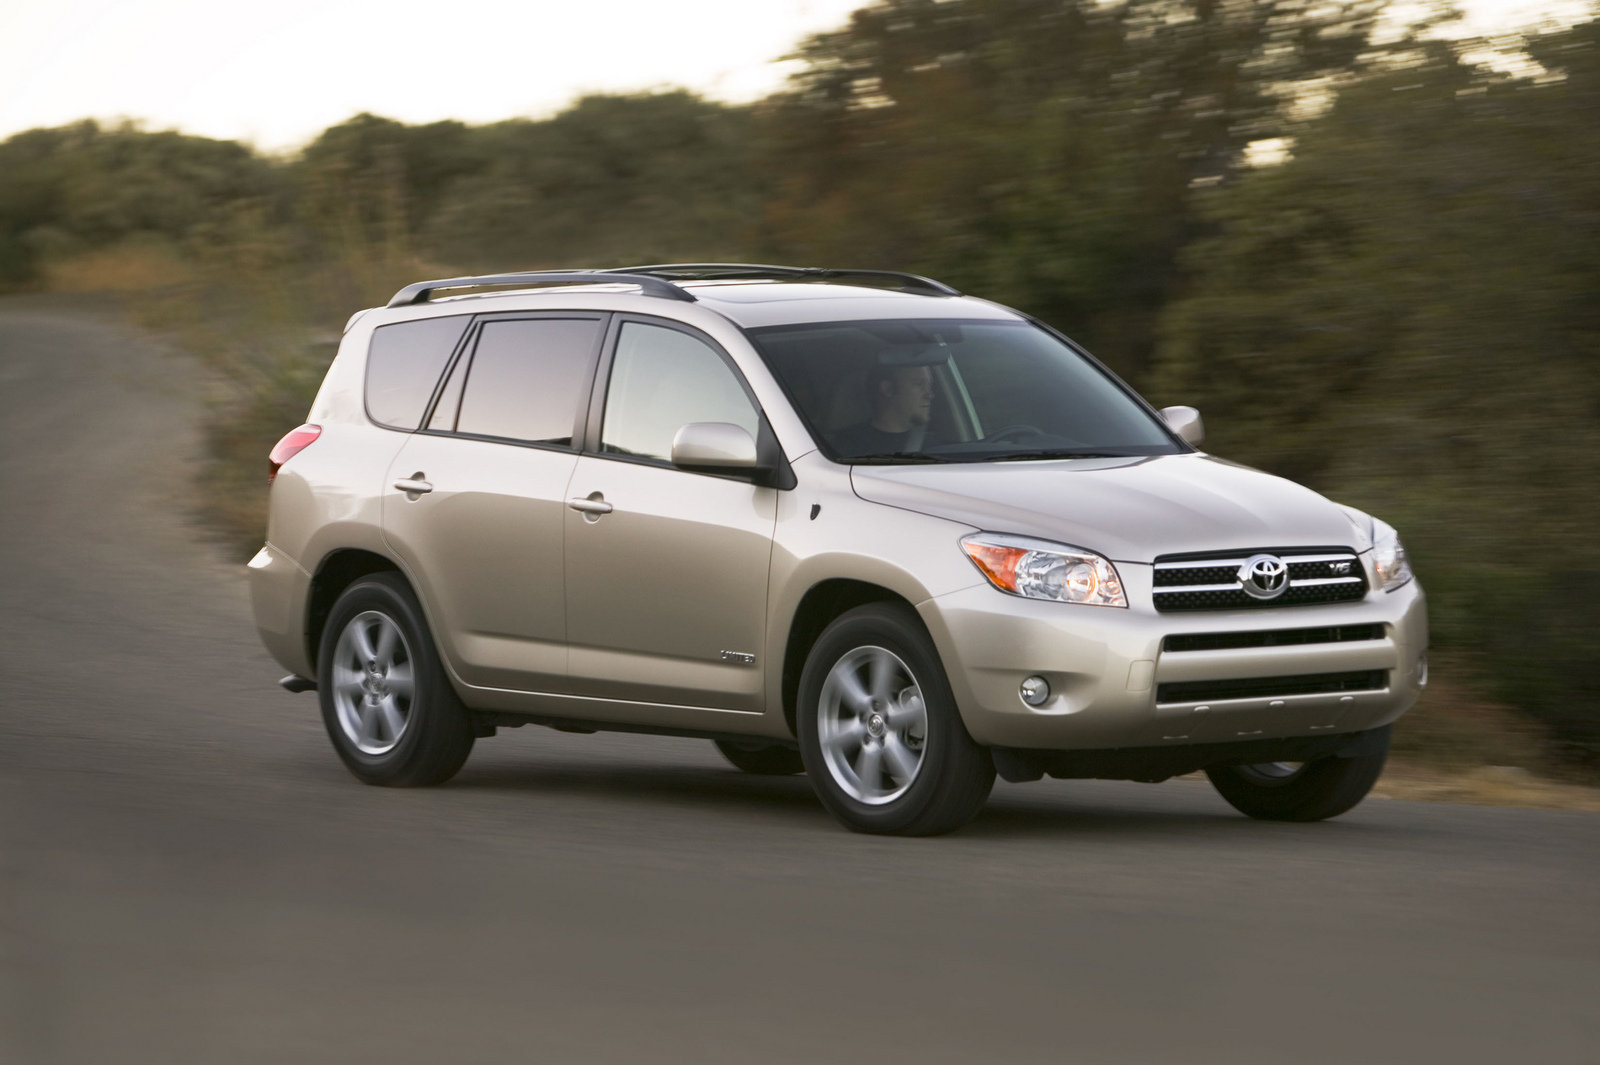 2006 toyota rav4 picture 93586 car review top speed. Black Bedroom Furniture Sets. Home Design Ideas